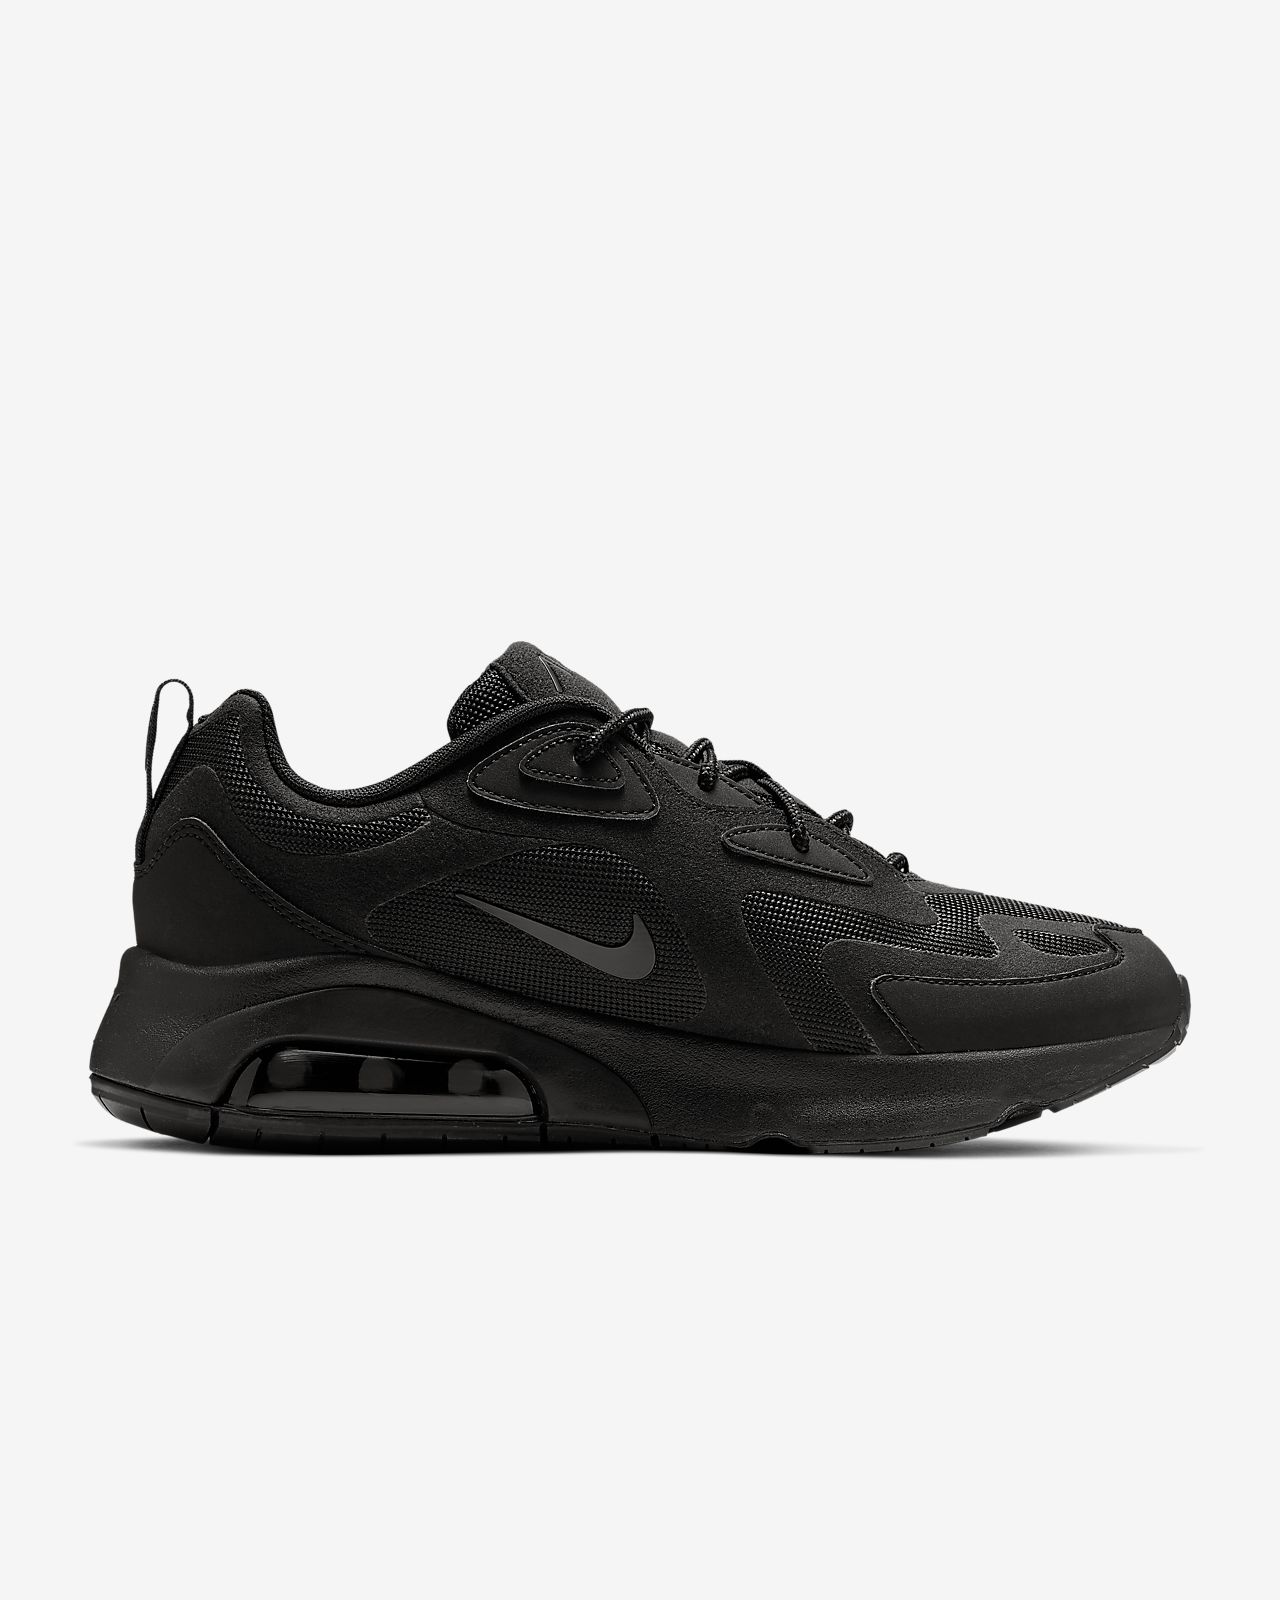 200 Homme Chaussure Pour Max Nike Air vf7g6yYb